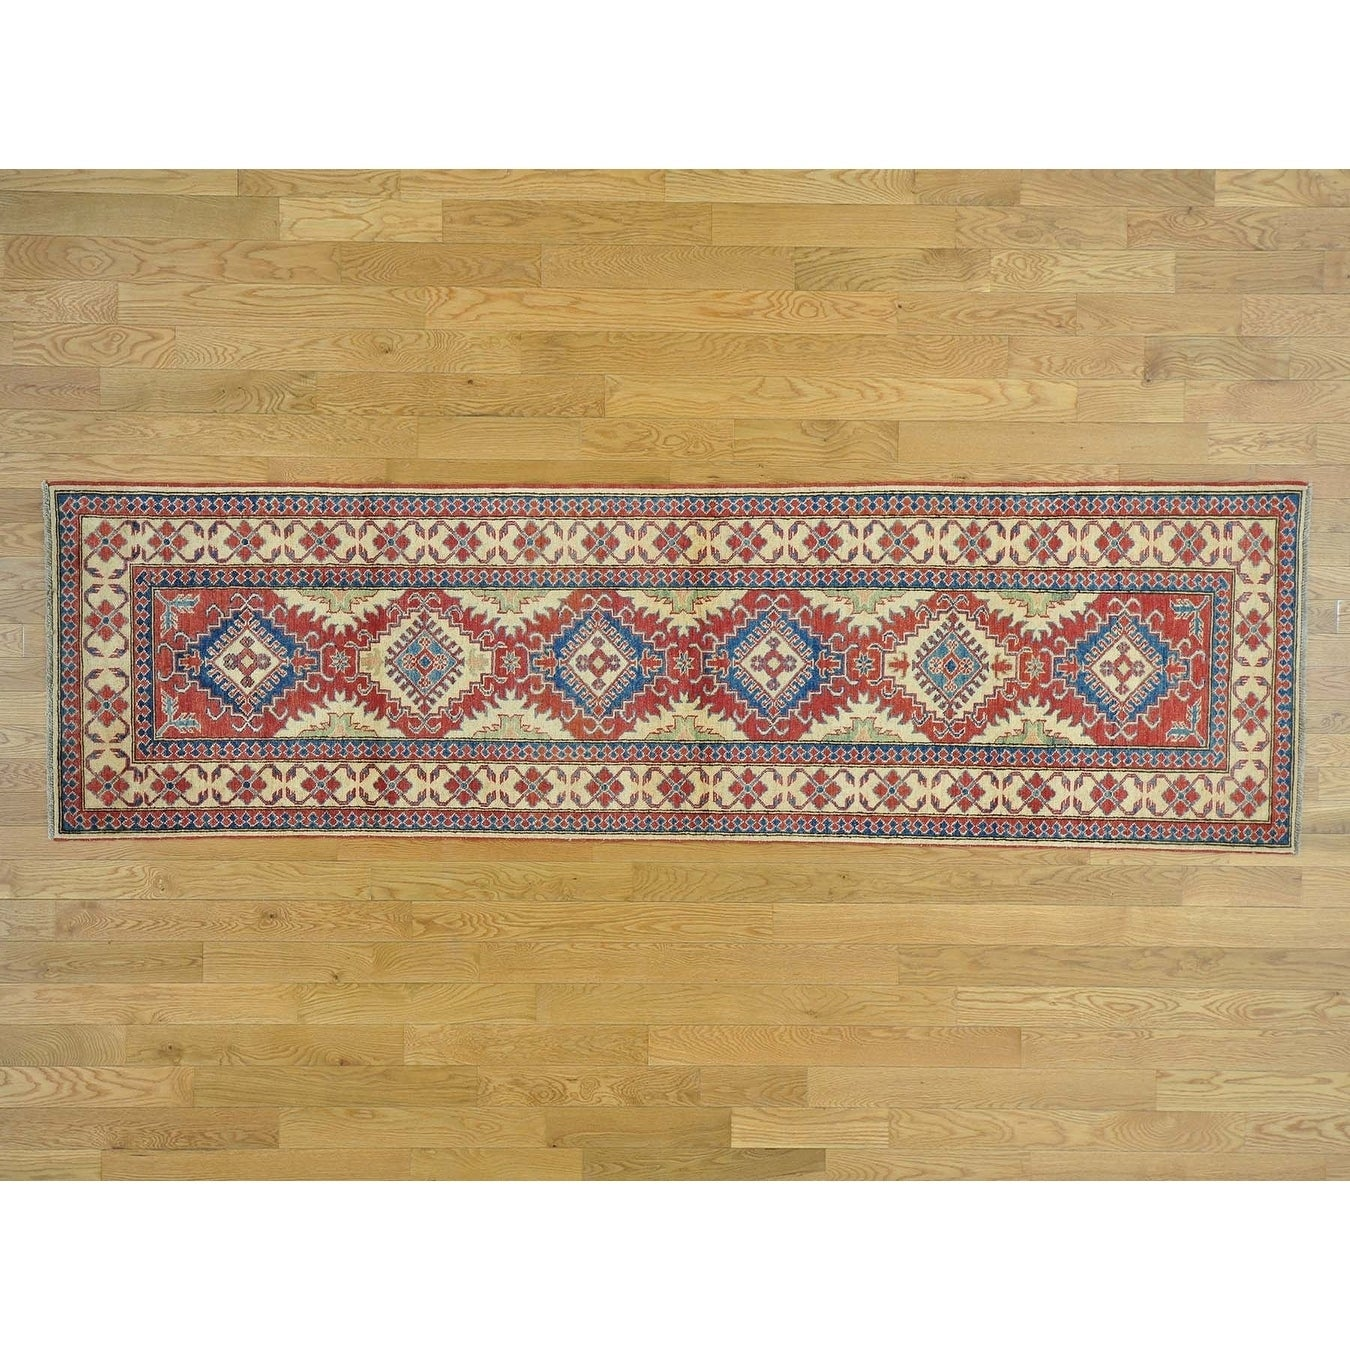 Hand Knotted Red Kazak with Wool Oriental Rug - 210 x 101